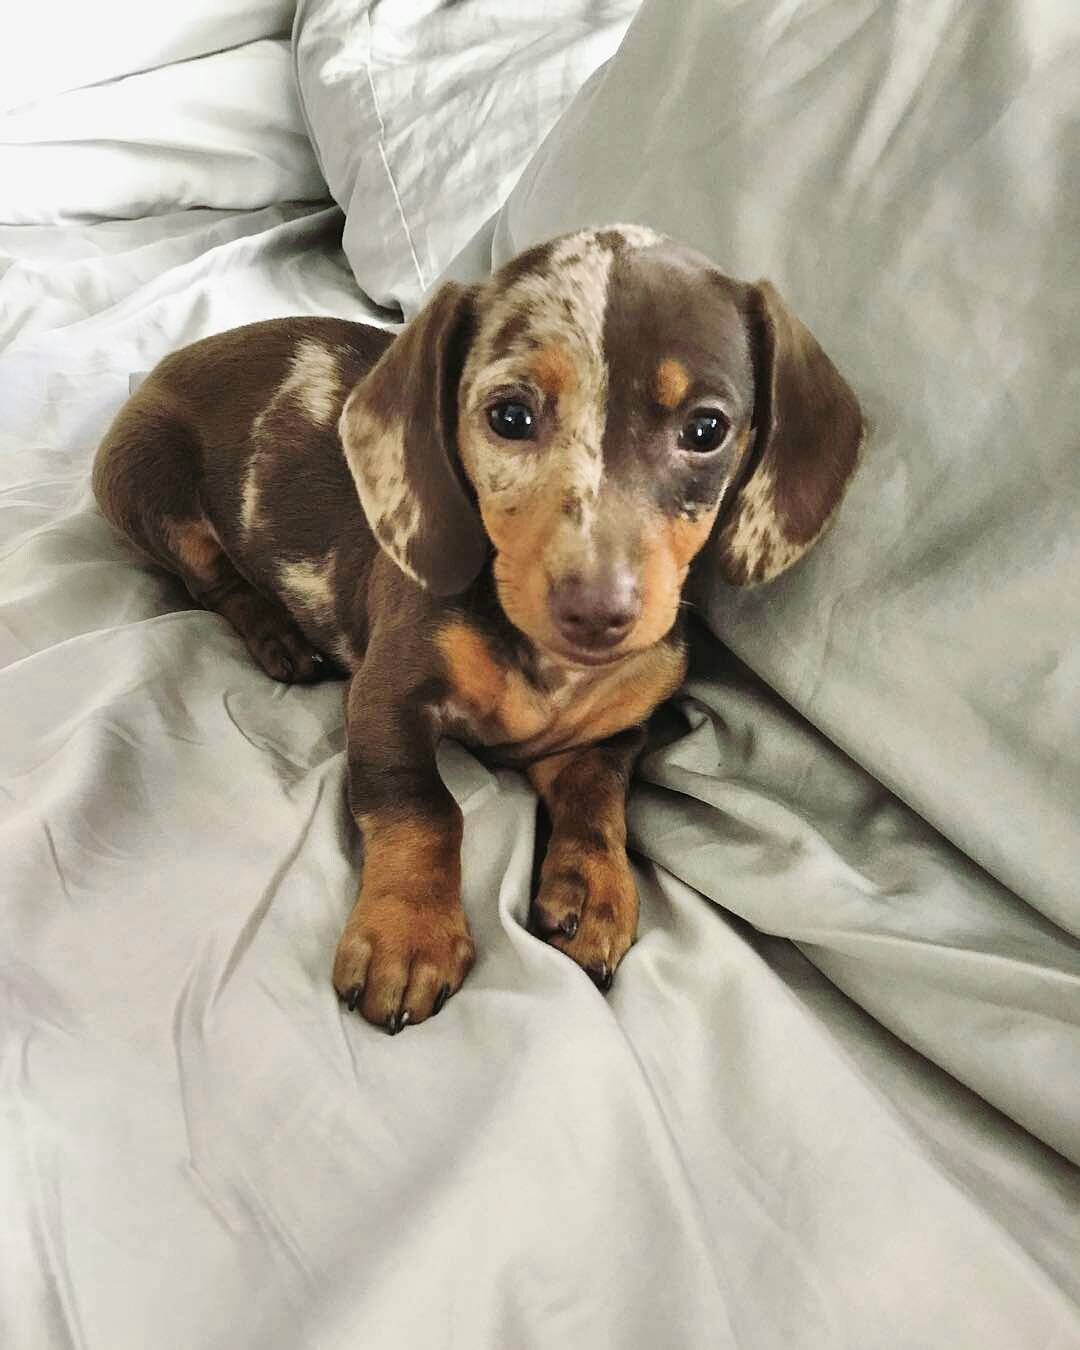 22 7k Likes 323 Comments Dachshund World Thedoxieworld On